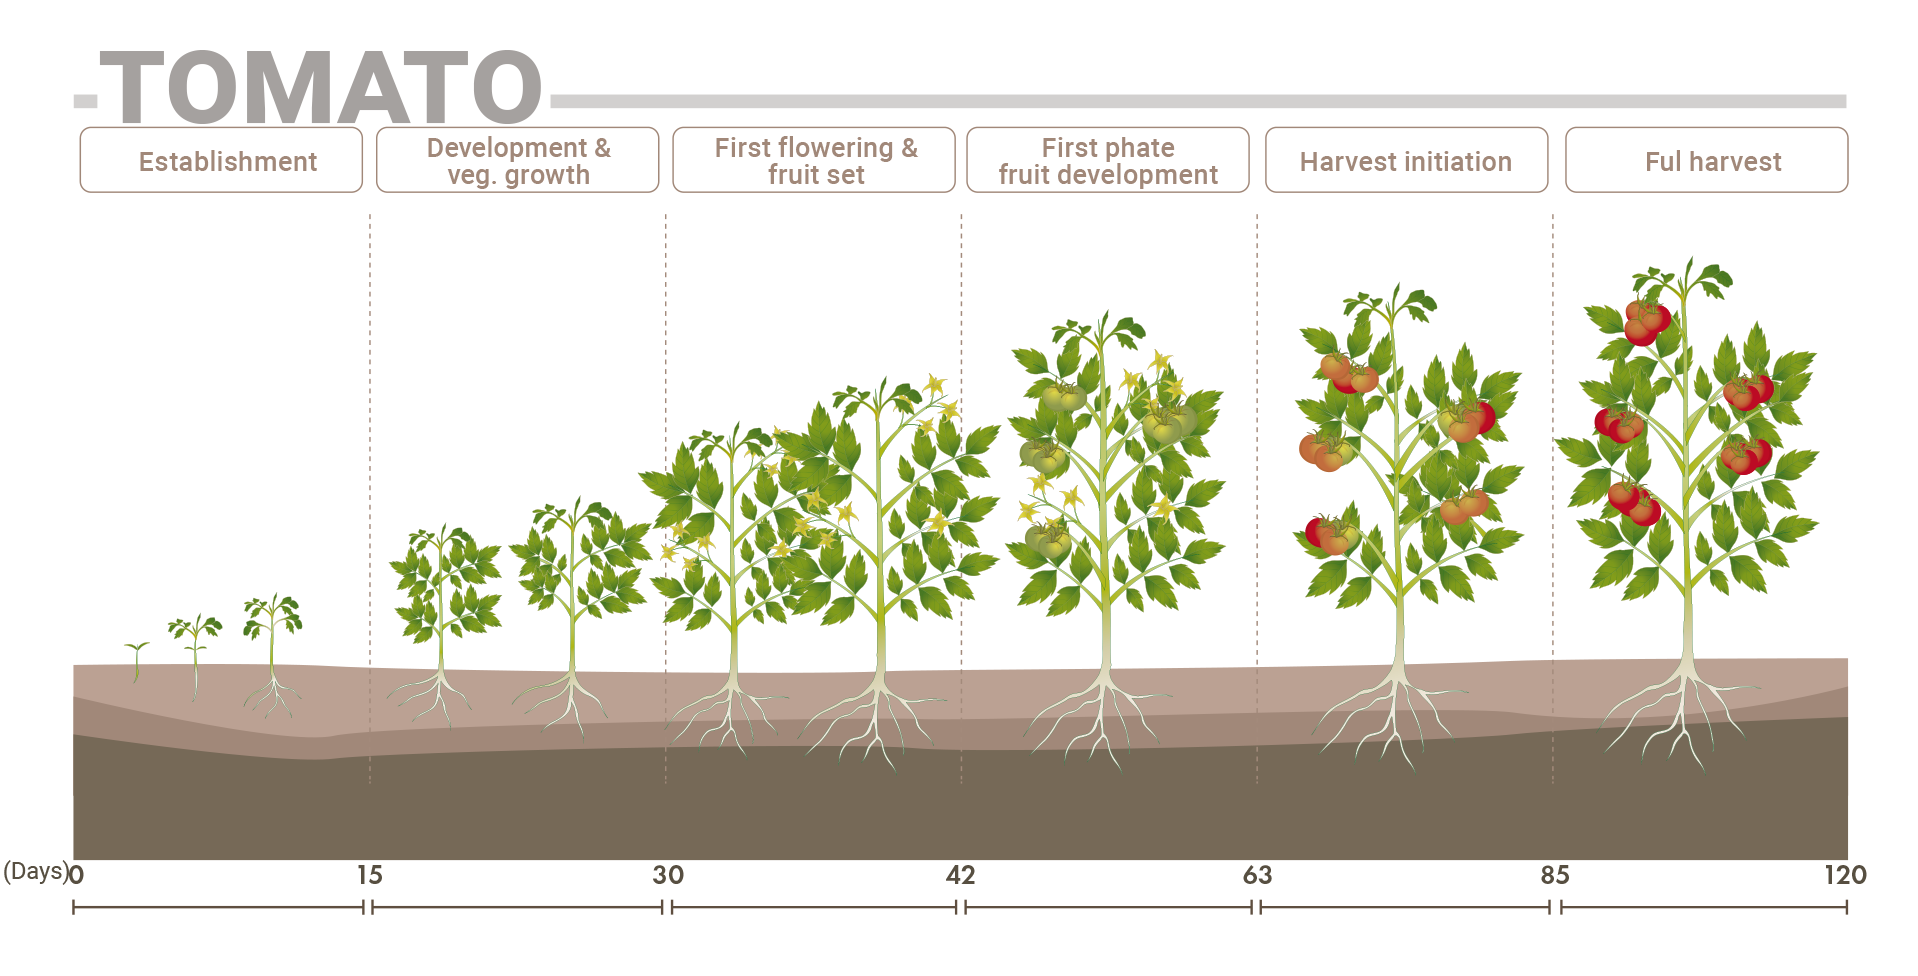 Phenological Stage Tomato